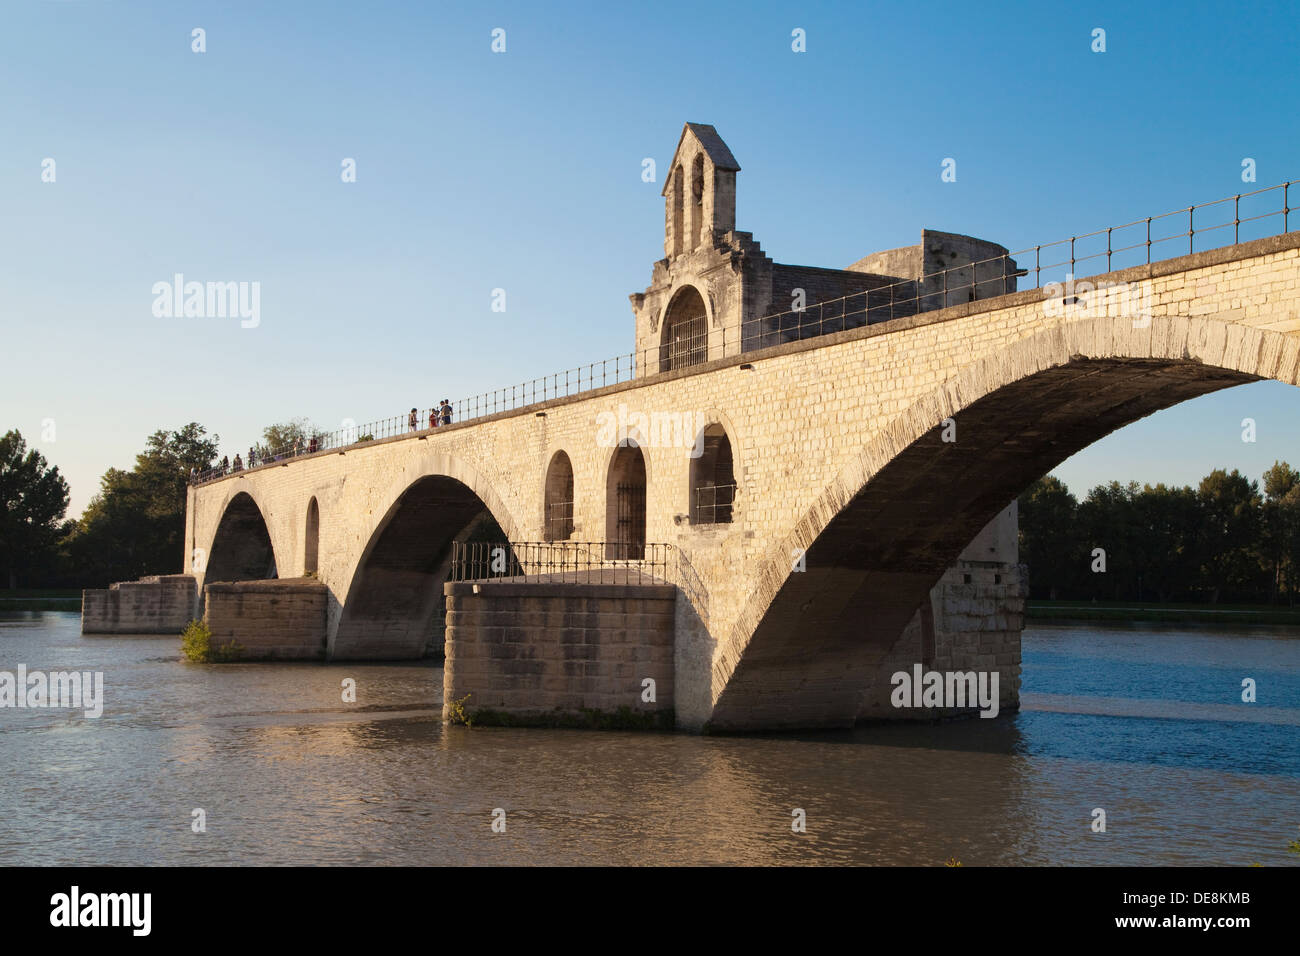 Pont Saint Benezet over Rhone river in Avignon, Provence, France. - Stock Image